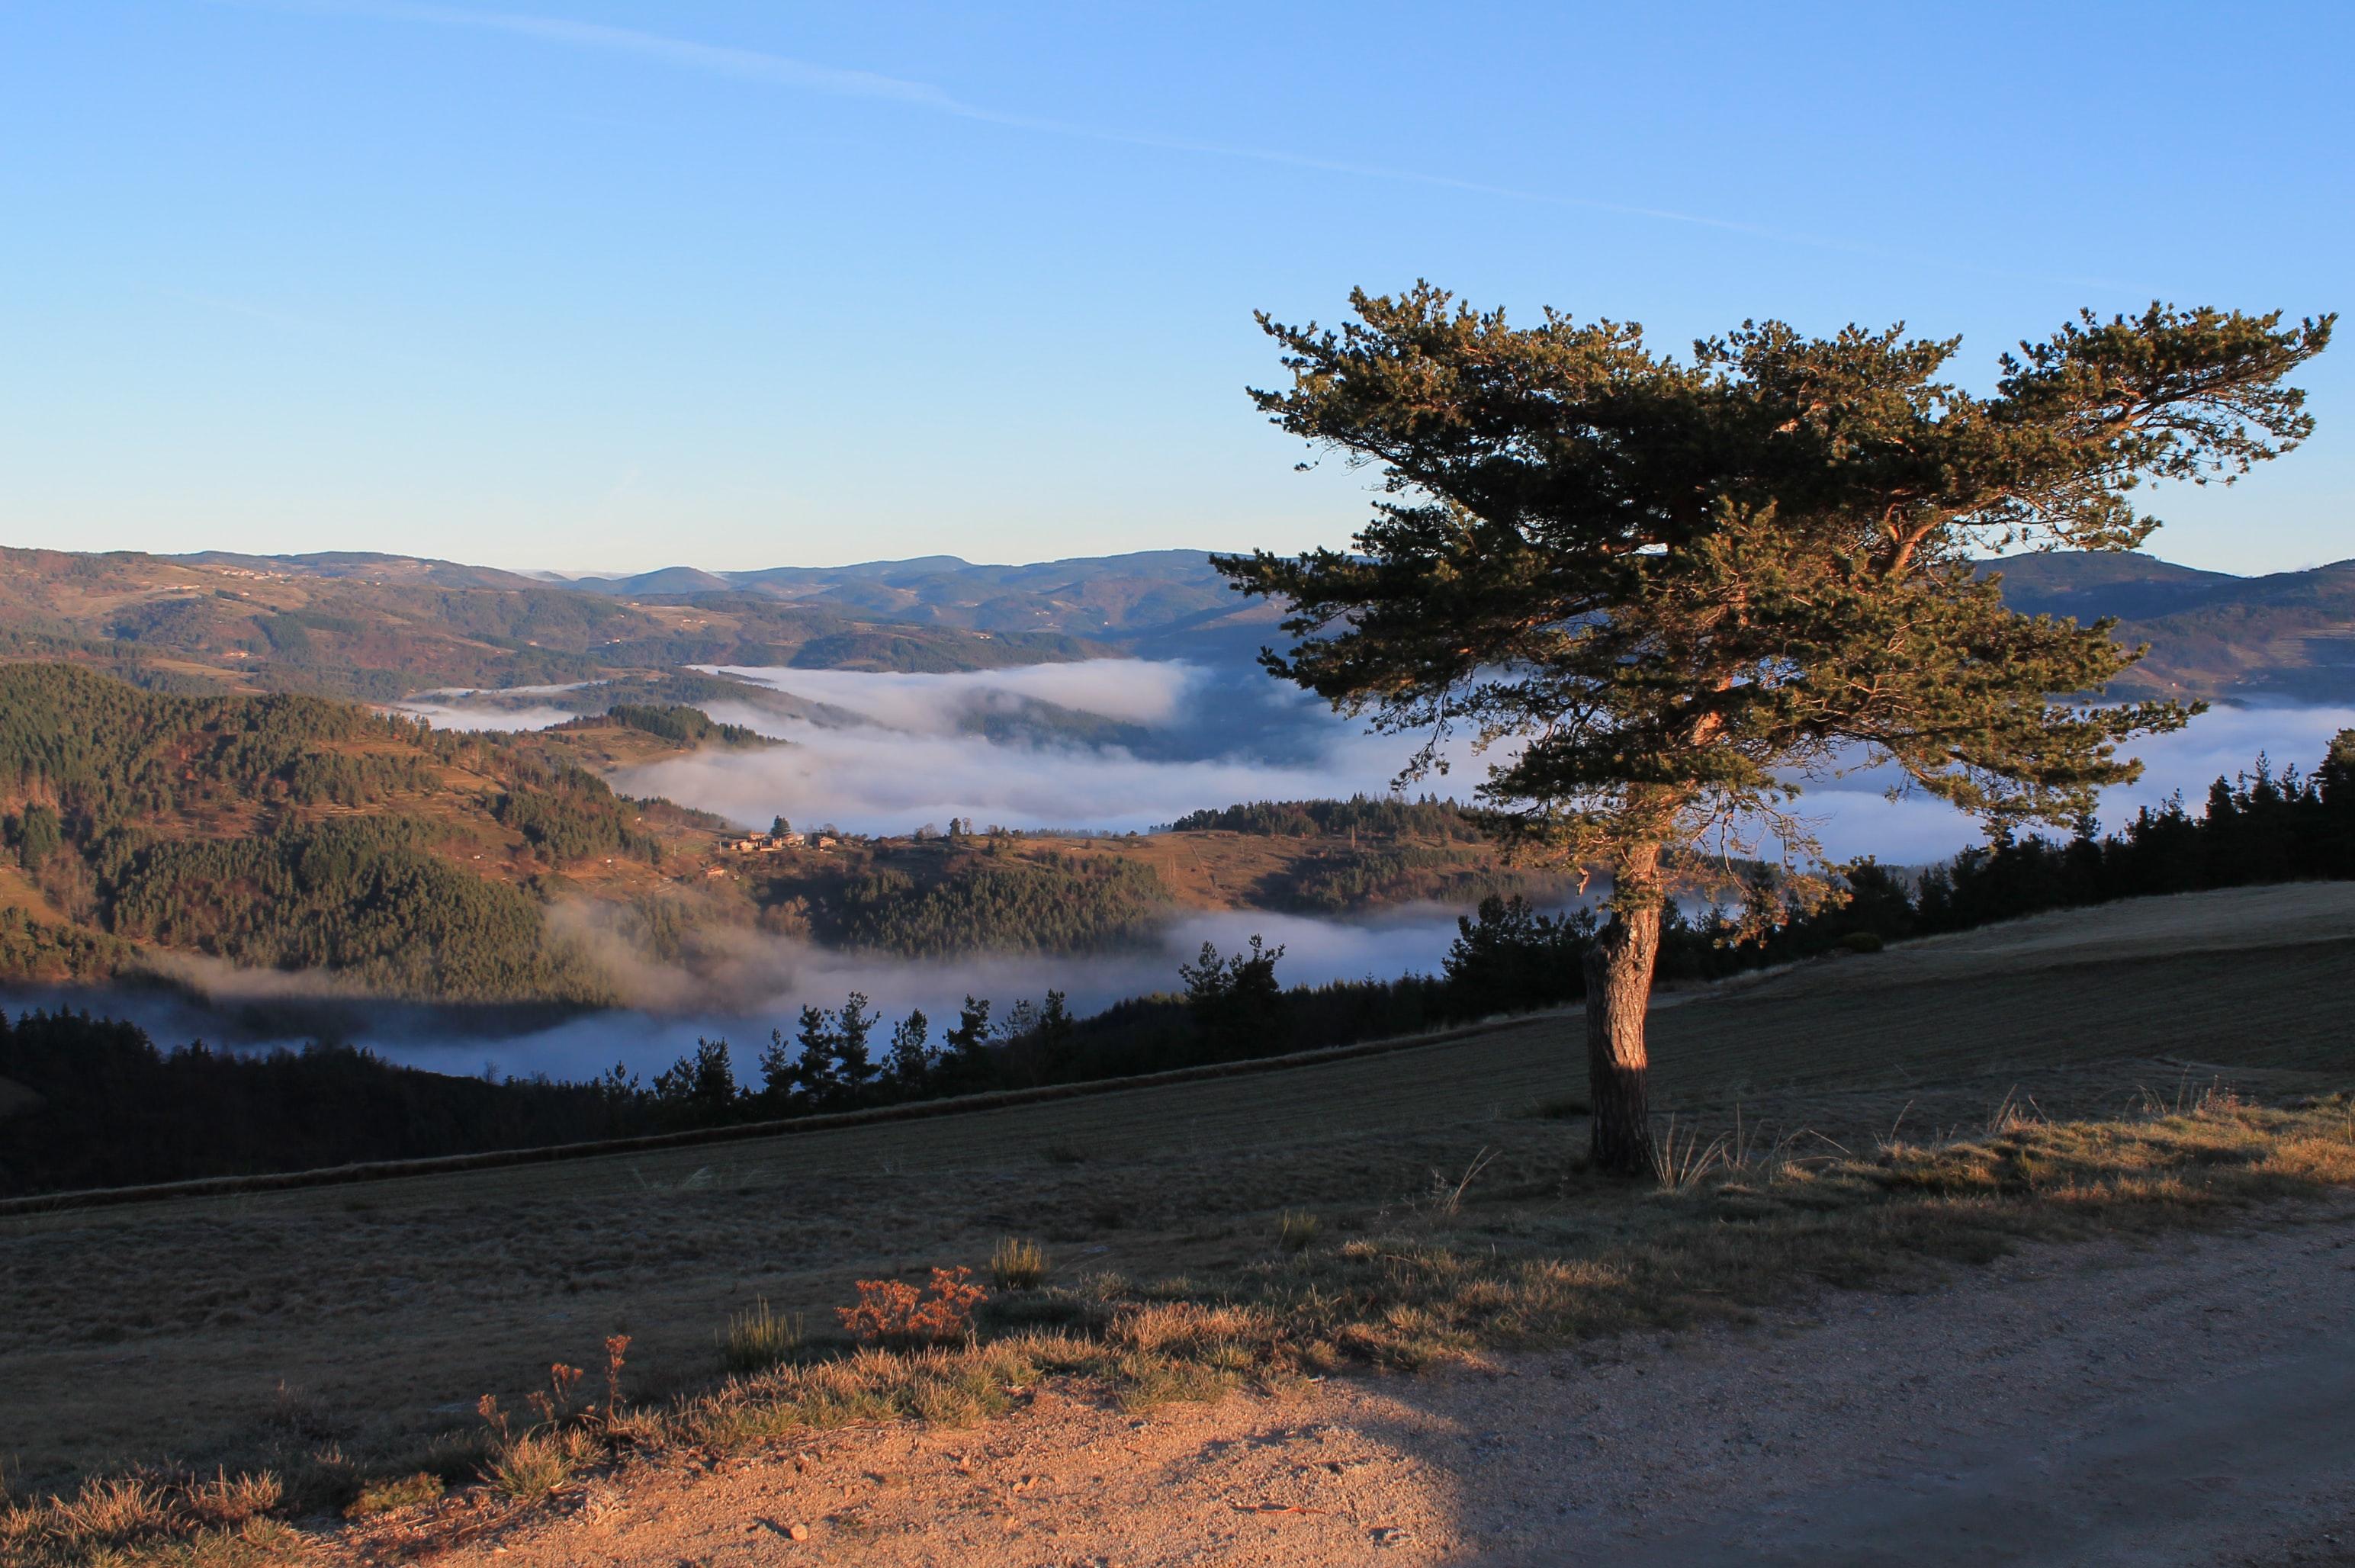 A lone tree on a slope with a fog-shrouded valley in the back